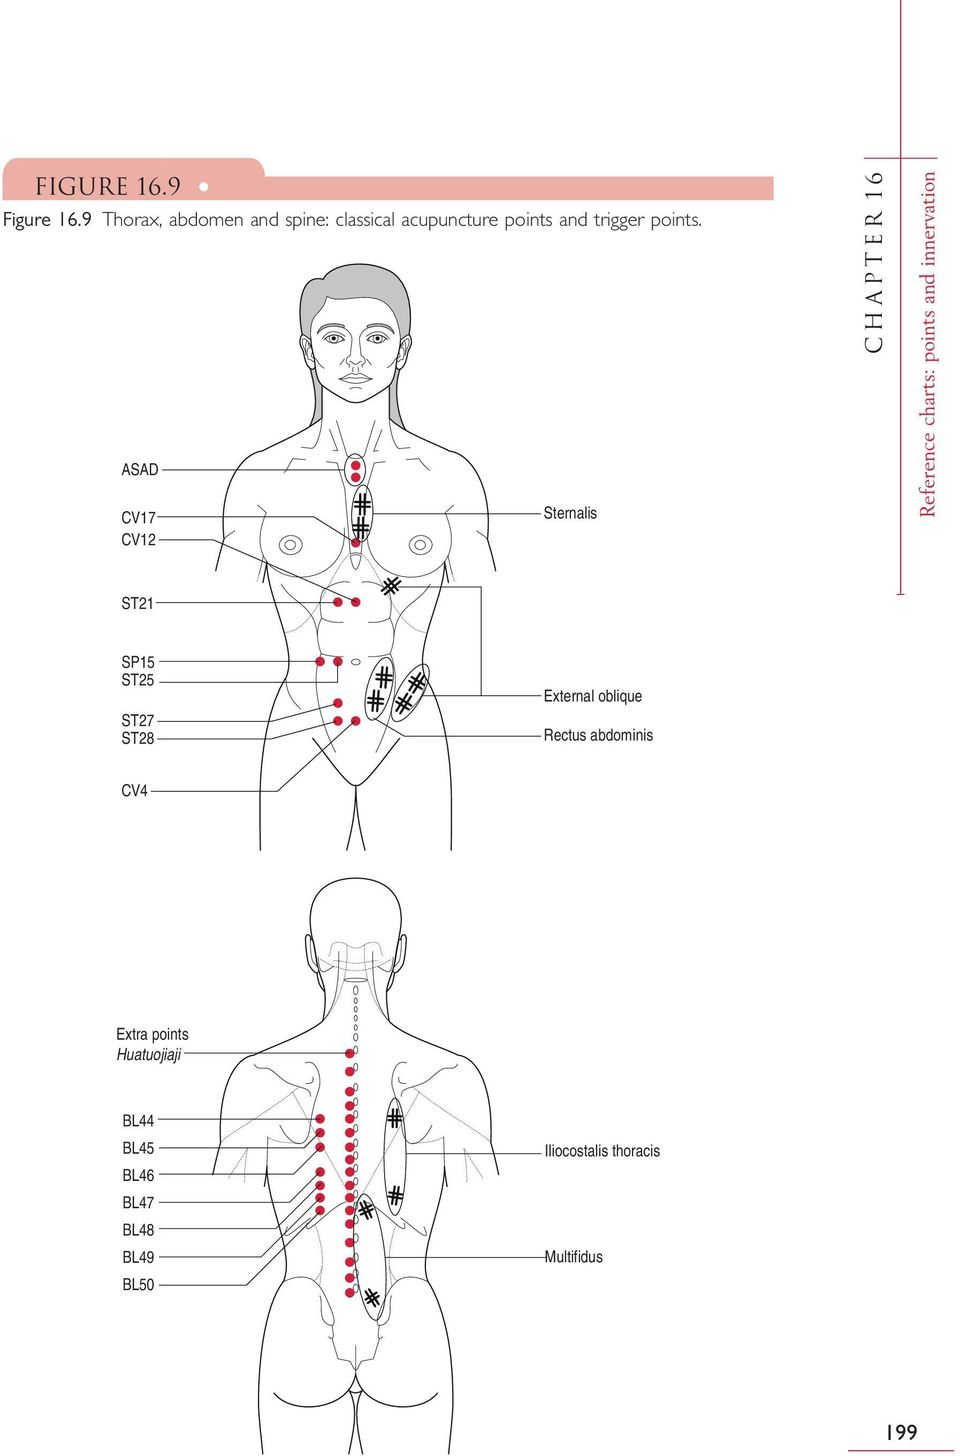 ASAD CV17 CV12 Sternalis CHAPTER 16 Reference charts: points and innervation ST21